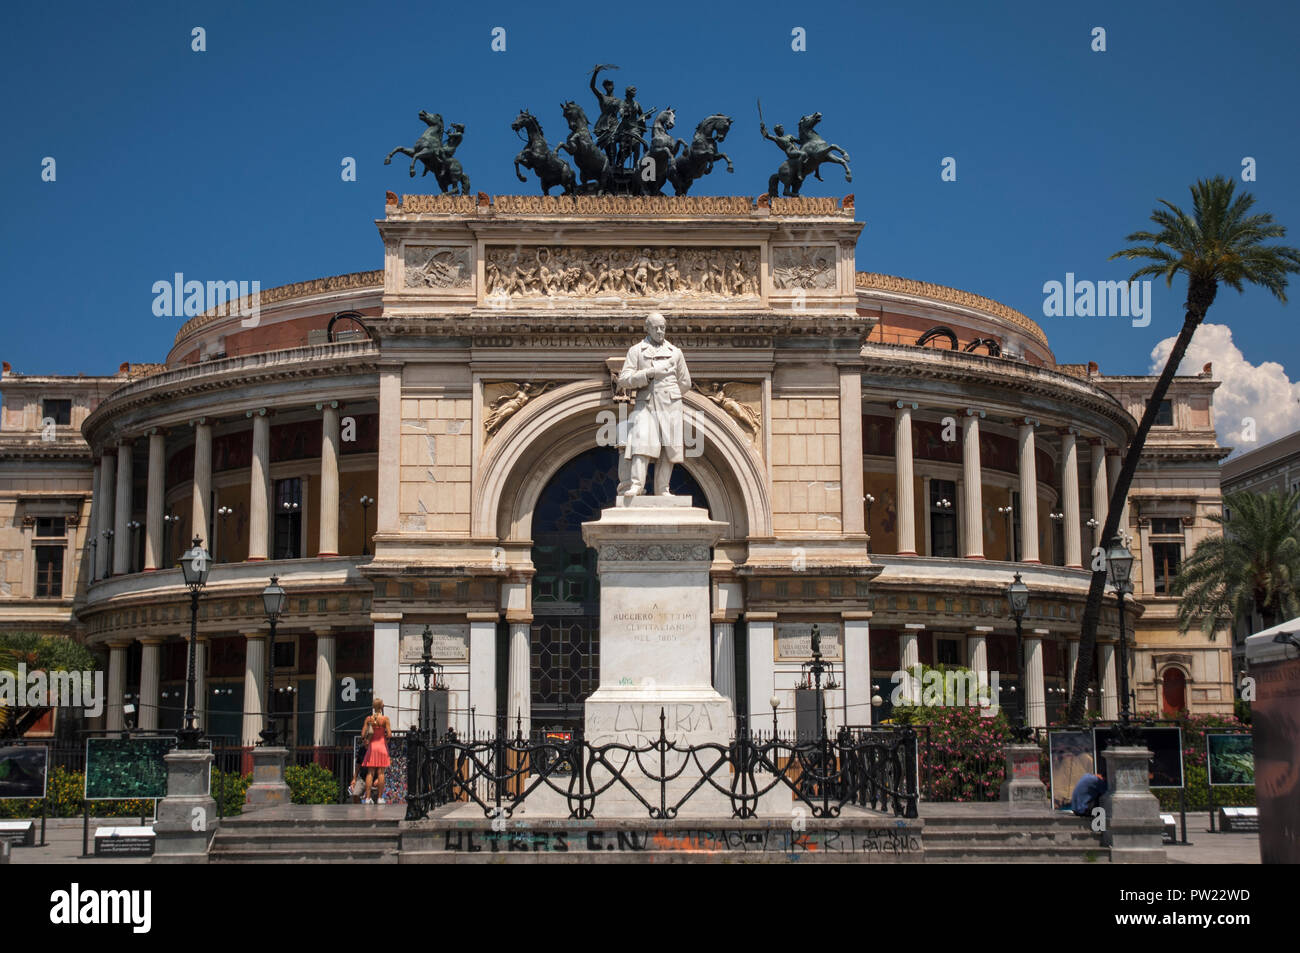 Teatro Politeama Garibaldi, featuring a triumphal arch with a bronze quadriga of horses and chariot above it and a statue of Ruggero Settimo in front Stock Photo